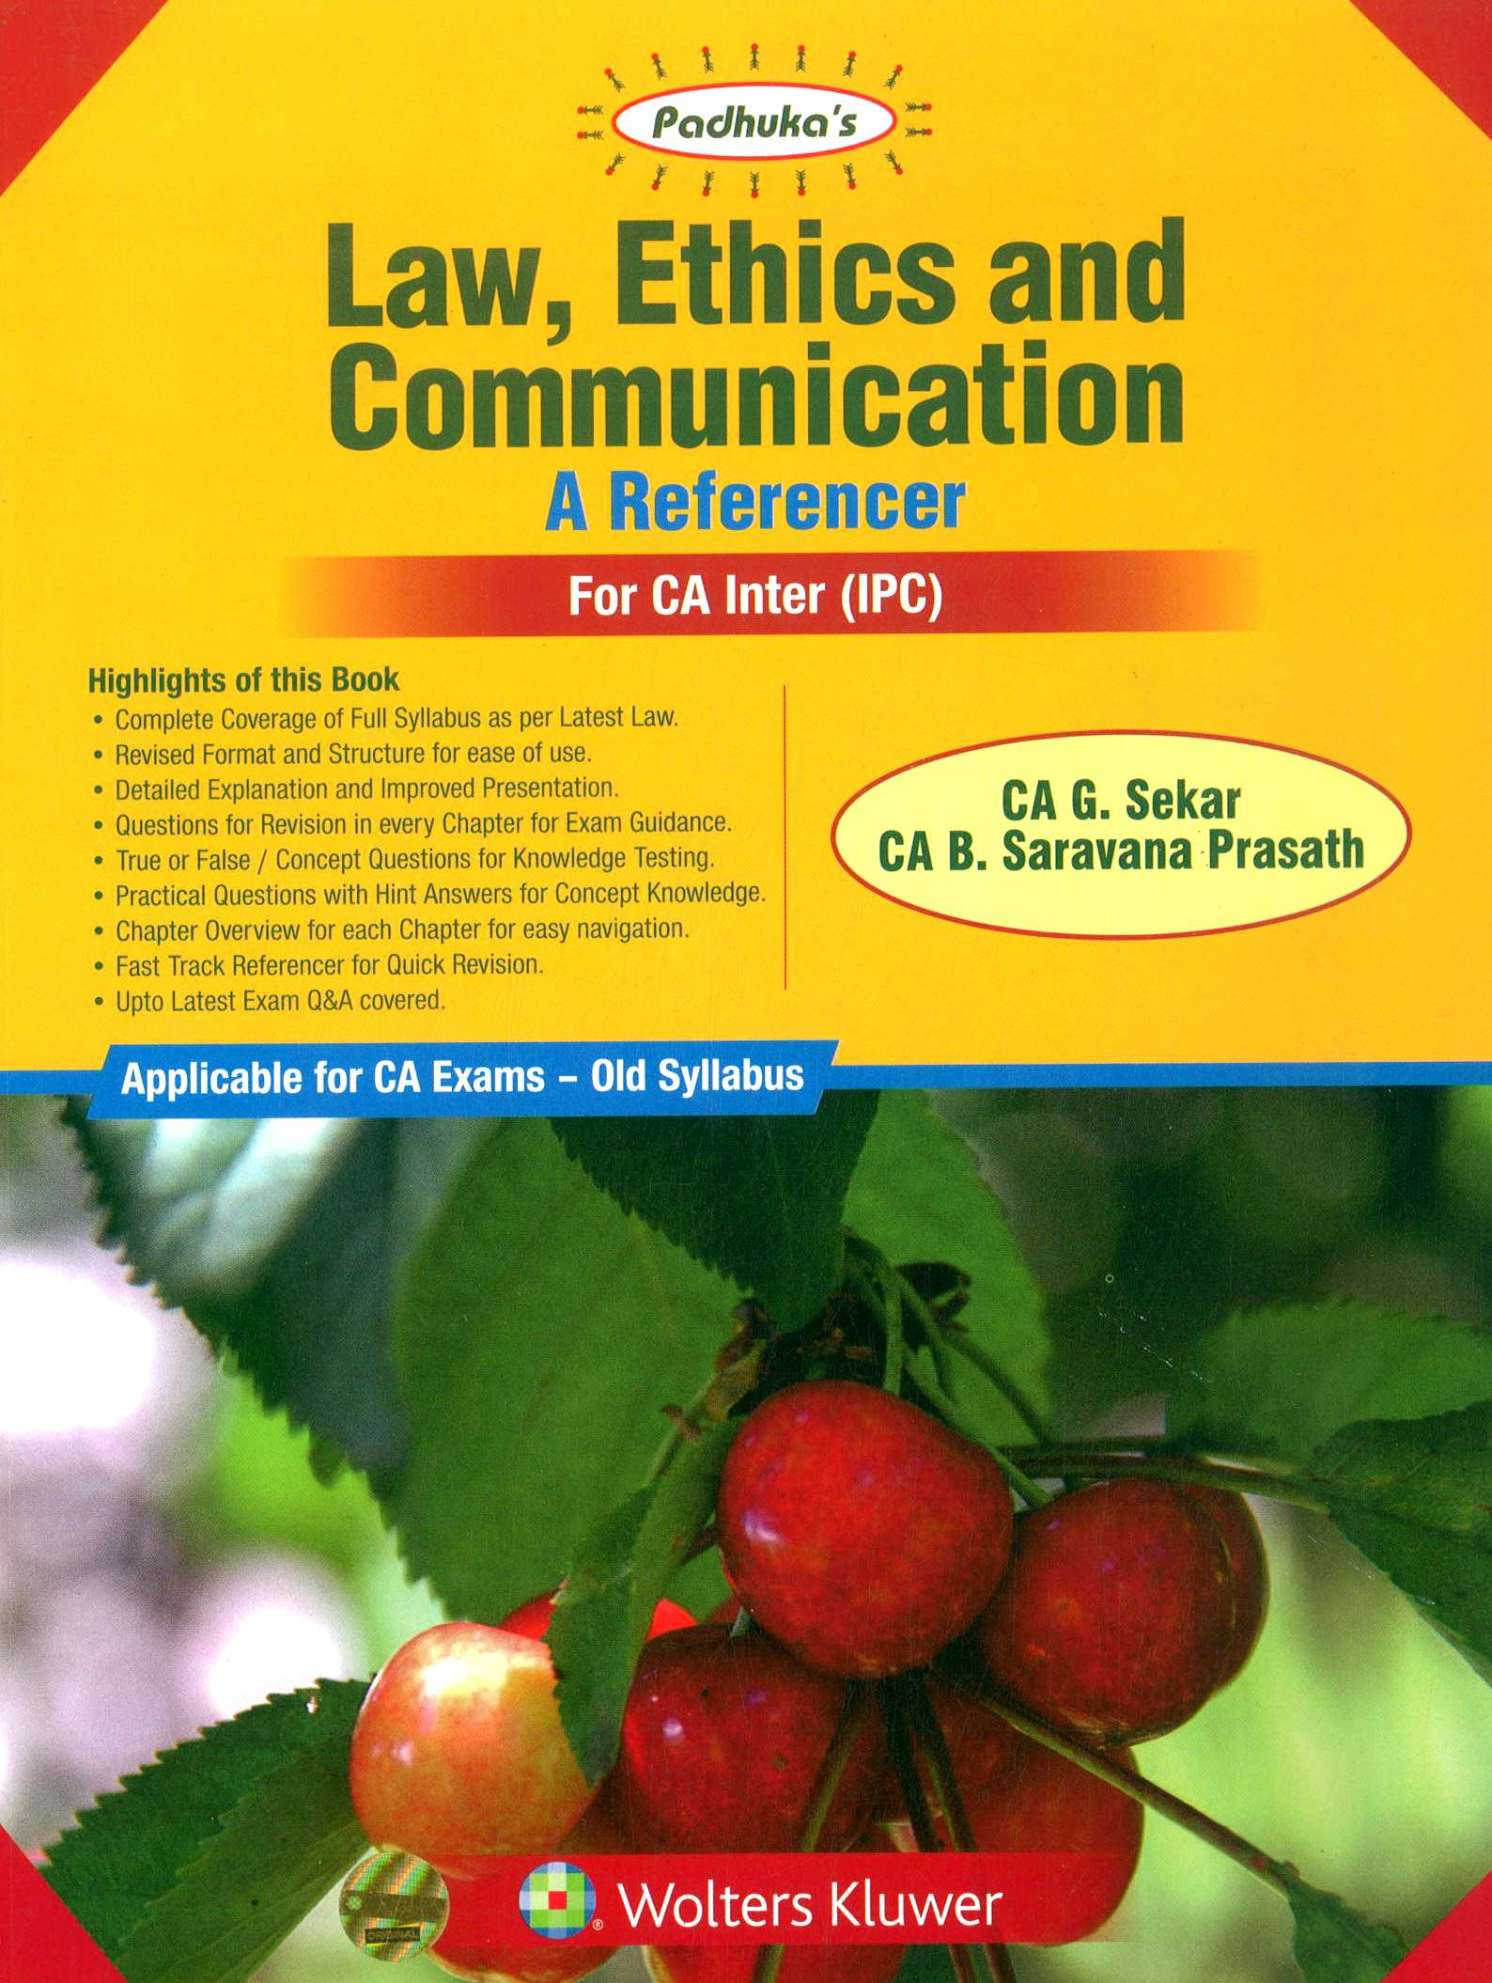 Padhuka's Law, Ethics and Communication A Reference for CA Inter (IPC) by CA G. Sekar and CA B. Saravana Prasath (Wolters Kluwer Publication)  for May 2020 Exam